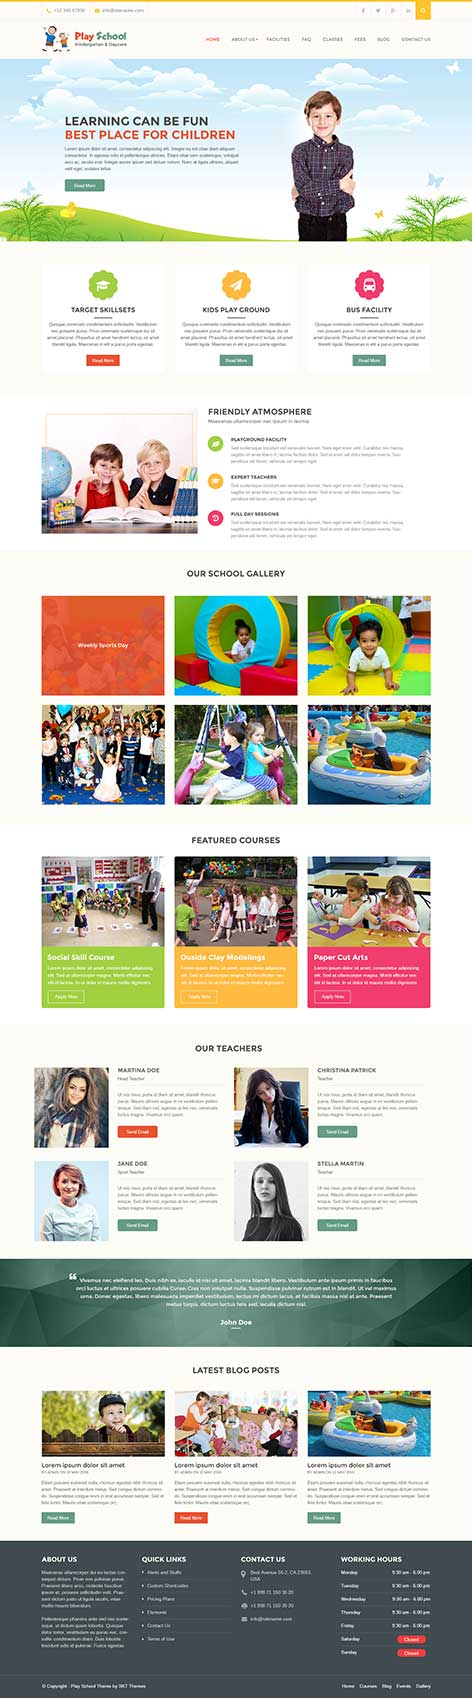 education wordpress theme1 - Play School